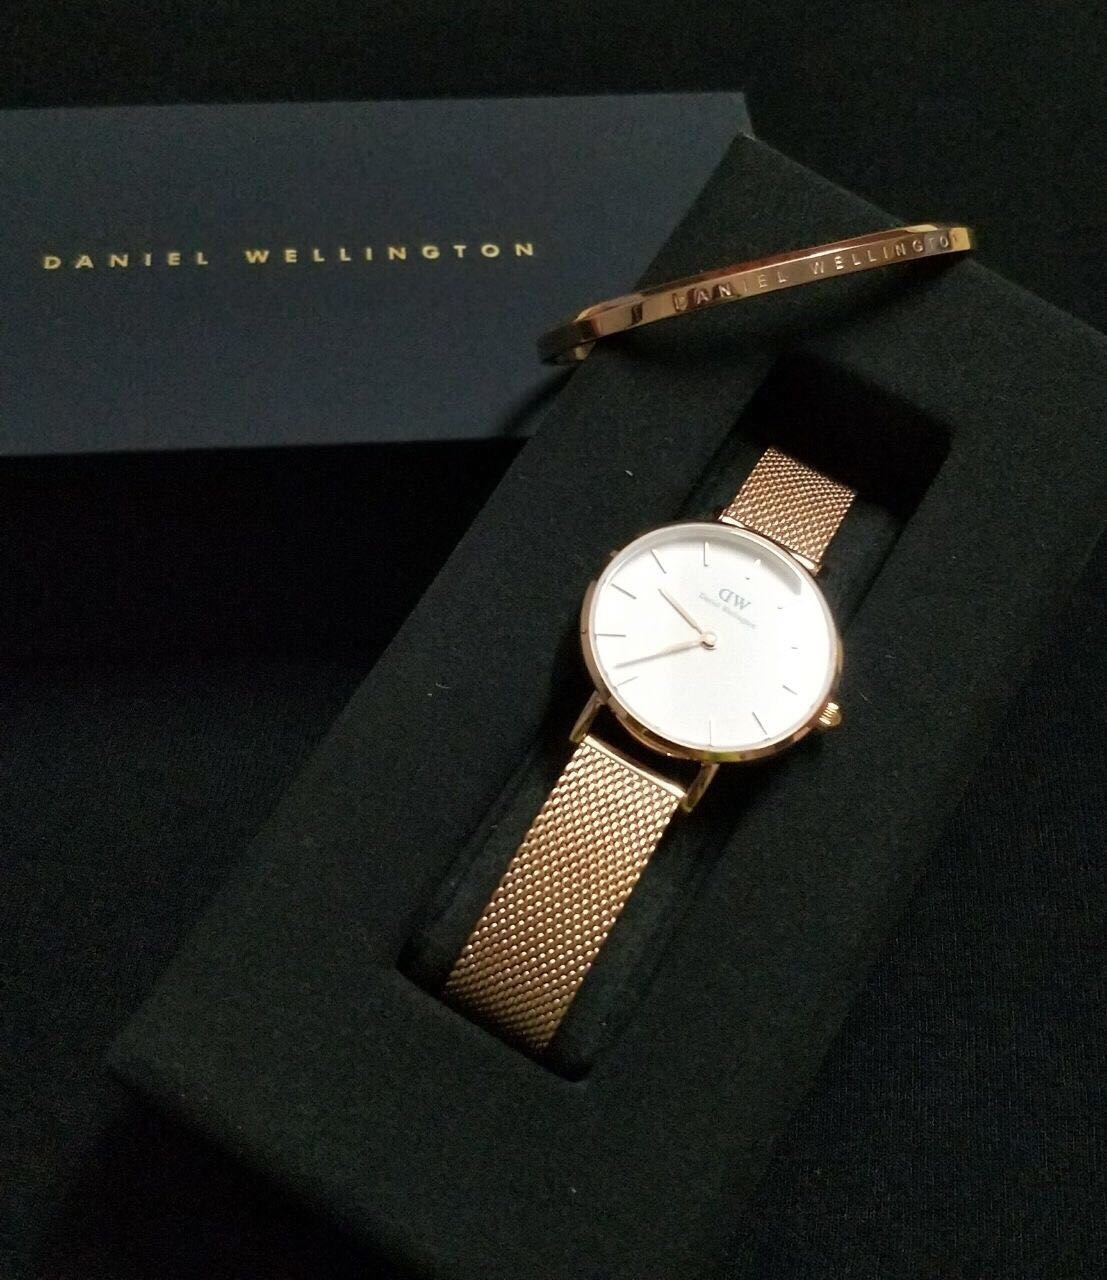 Thank you for the best birthday gift ever! Thank you @danielwellington for sending over the new Classic Petite Watch 28mm and Classic Melrose Cuff from @danielwellington ✨ Use my code BULBUL to get a 15%discount on all purchases until 15th Dec'17 and if that's not enough - there is free shipping worldwide. ✨www.danielwellington.com ✨ . . #fravaganza #फQ #fashionquotient #TheBazaar #Beats #Rangoli #LookGood #FeelGood #Filmistaan #TopNotch #Celebration #CreativeSpace #Musafir #WordPower #Captured #Trending #roposotalenthunt